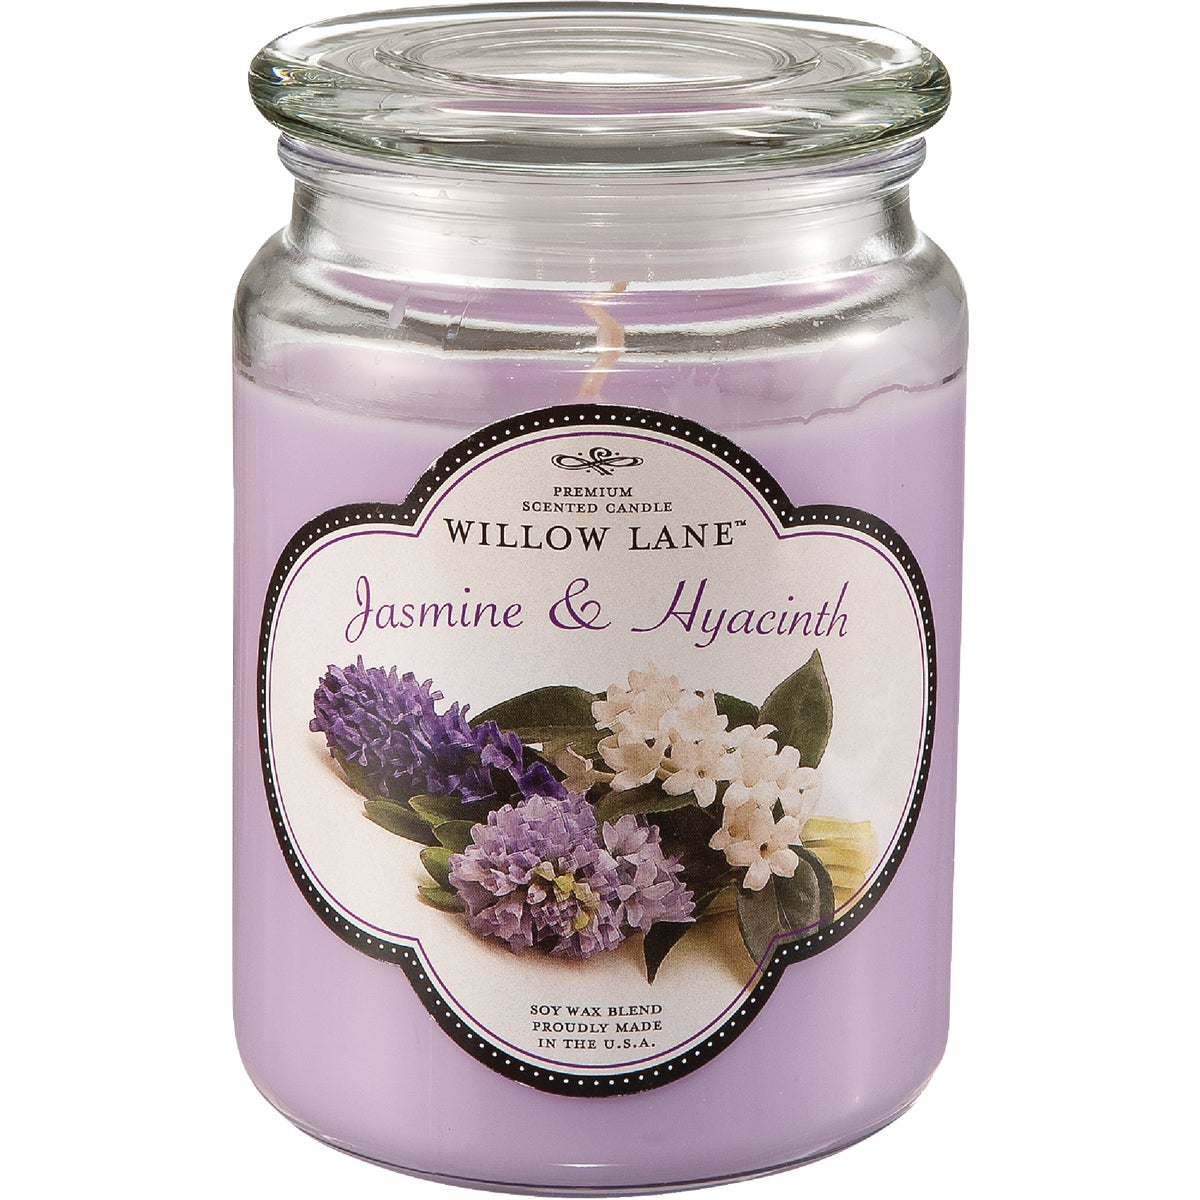 JASMIN/HYACIN JAR CANDLE - 1646622 by Candle Lite Co